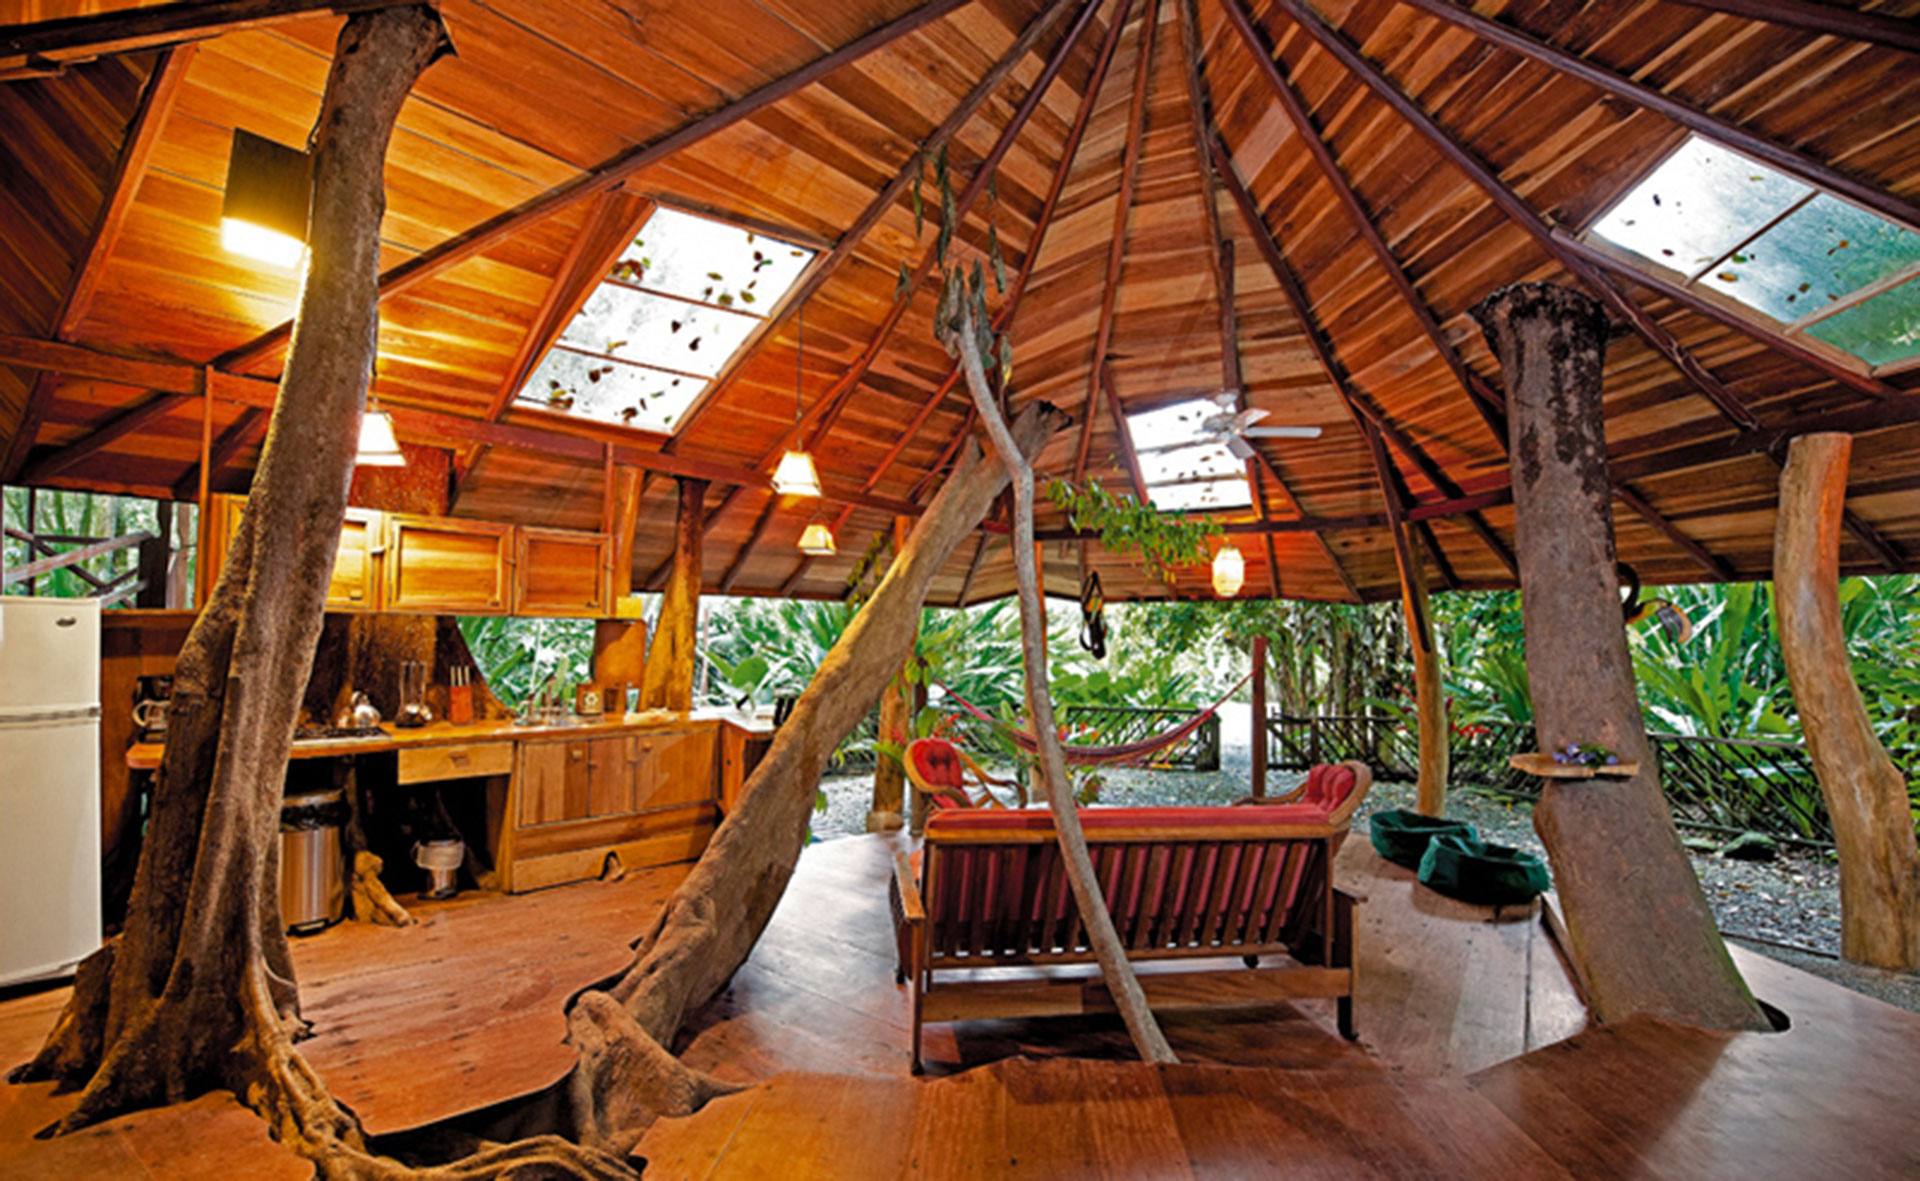 Treehouse Room at Tree House Lodge in Costa Rica; Courtesy of Tree House Lodge